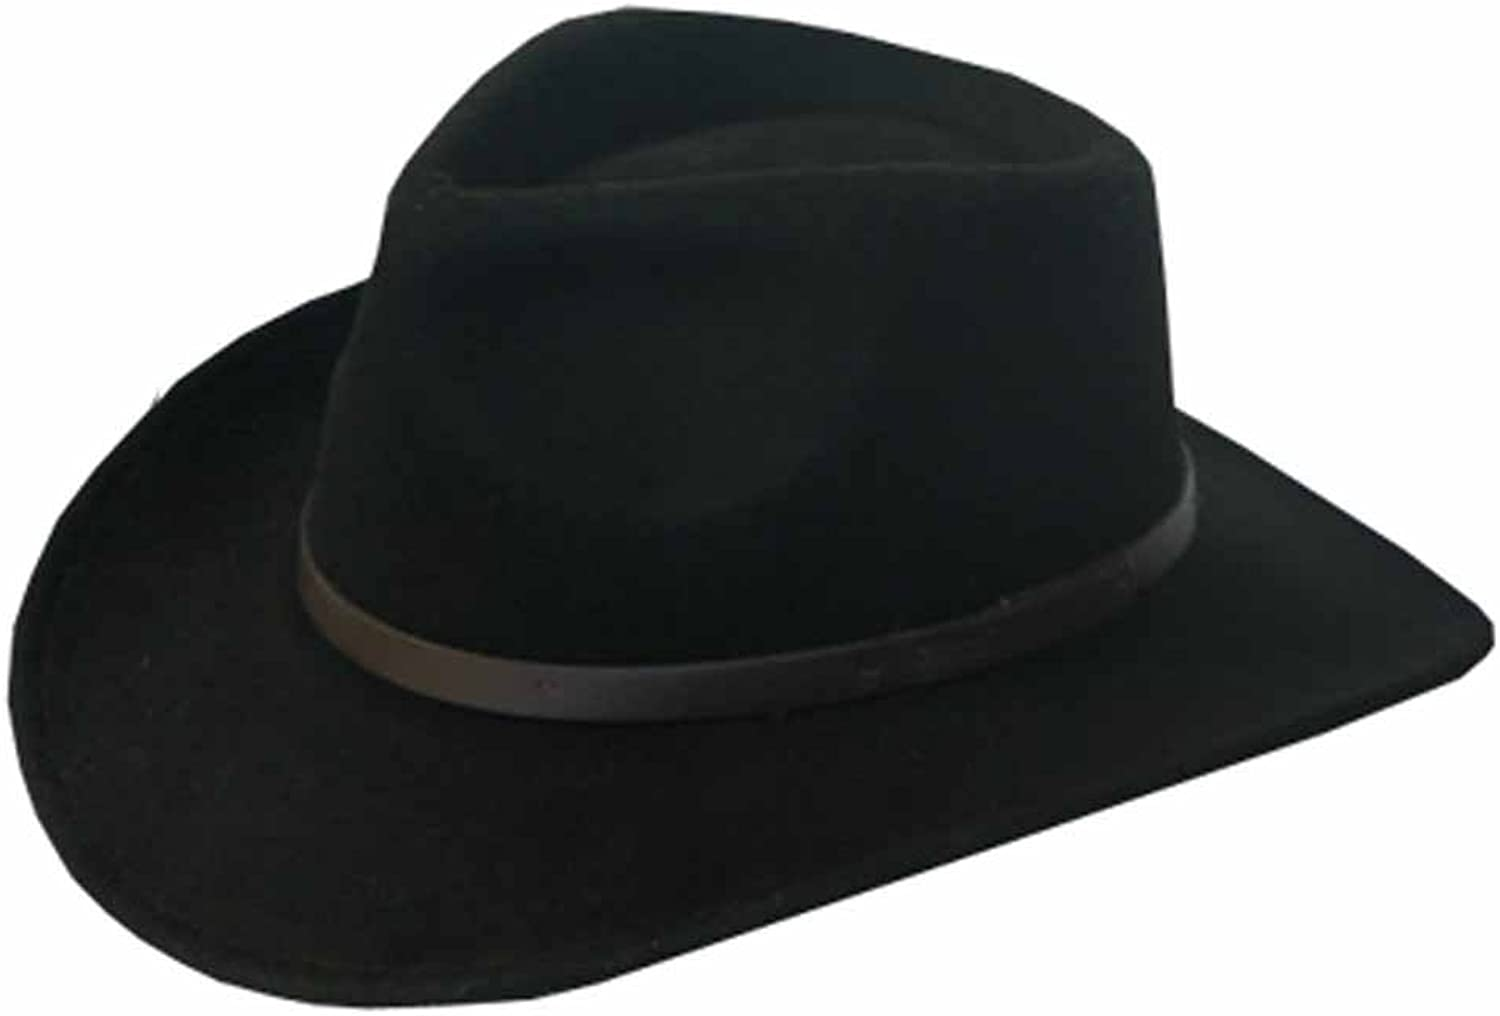 BENTLEY OUTBACK Crushable Outback Wool Felt Hat Fedora Fashion Men and Women